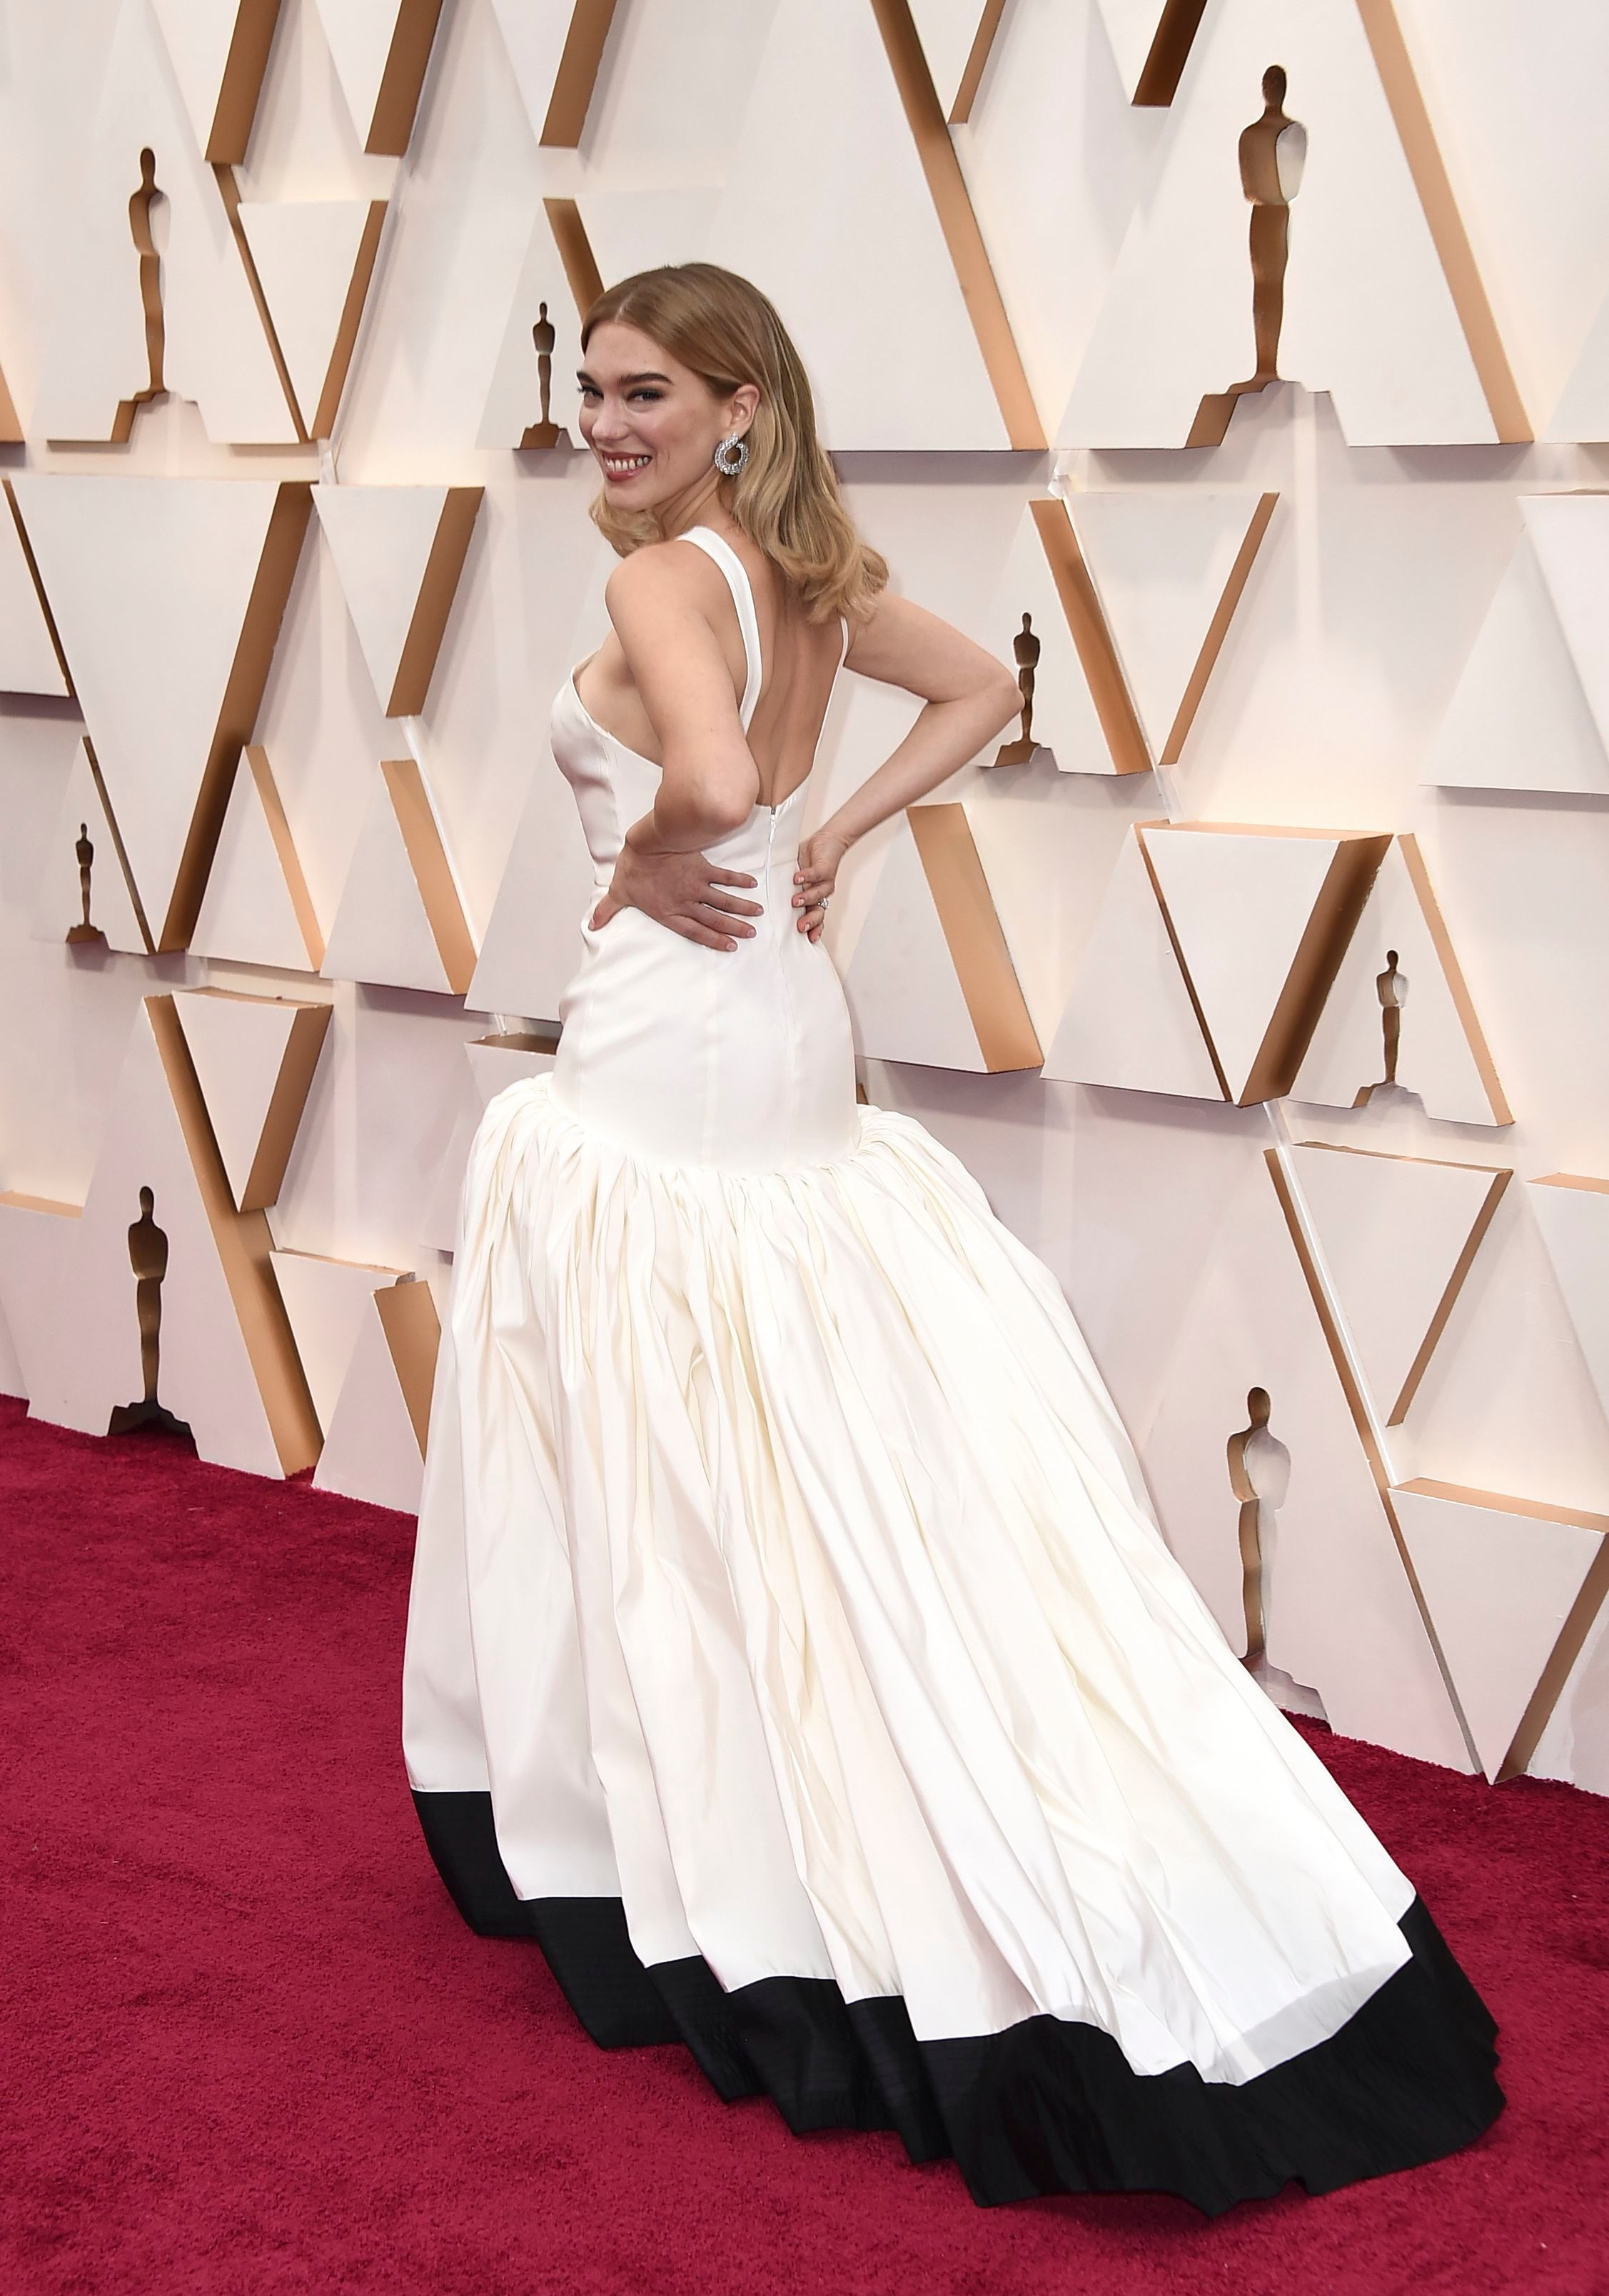 Lea Seydoux arrives at the Oscars, at the Dolby Theatre in Los Angeles92nd Academy Awards - Arrivals, Los Angeles, USA - 09 Feb 2020